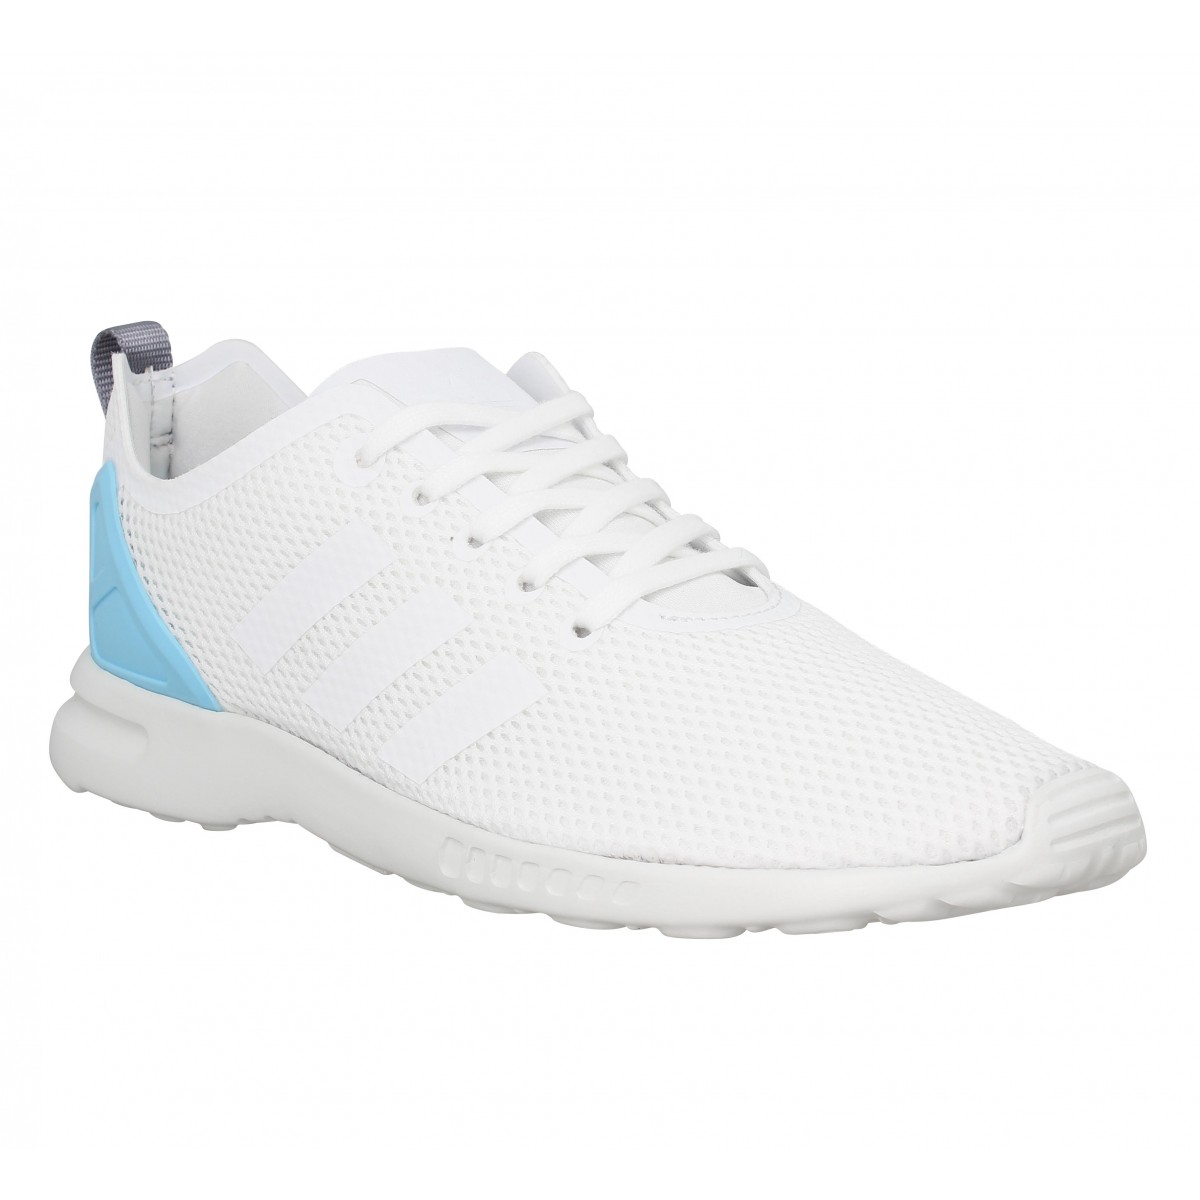 Baskets ADIDAS ZX Flux ADV smooth Femme Blanc